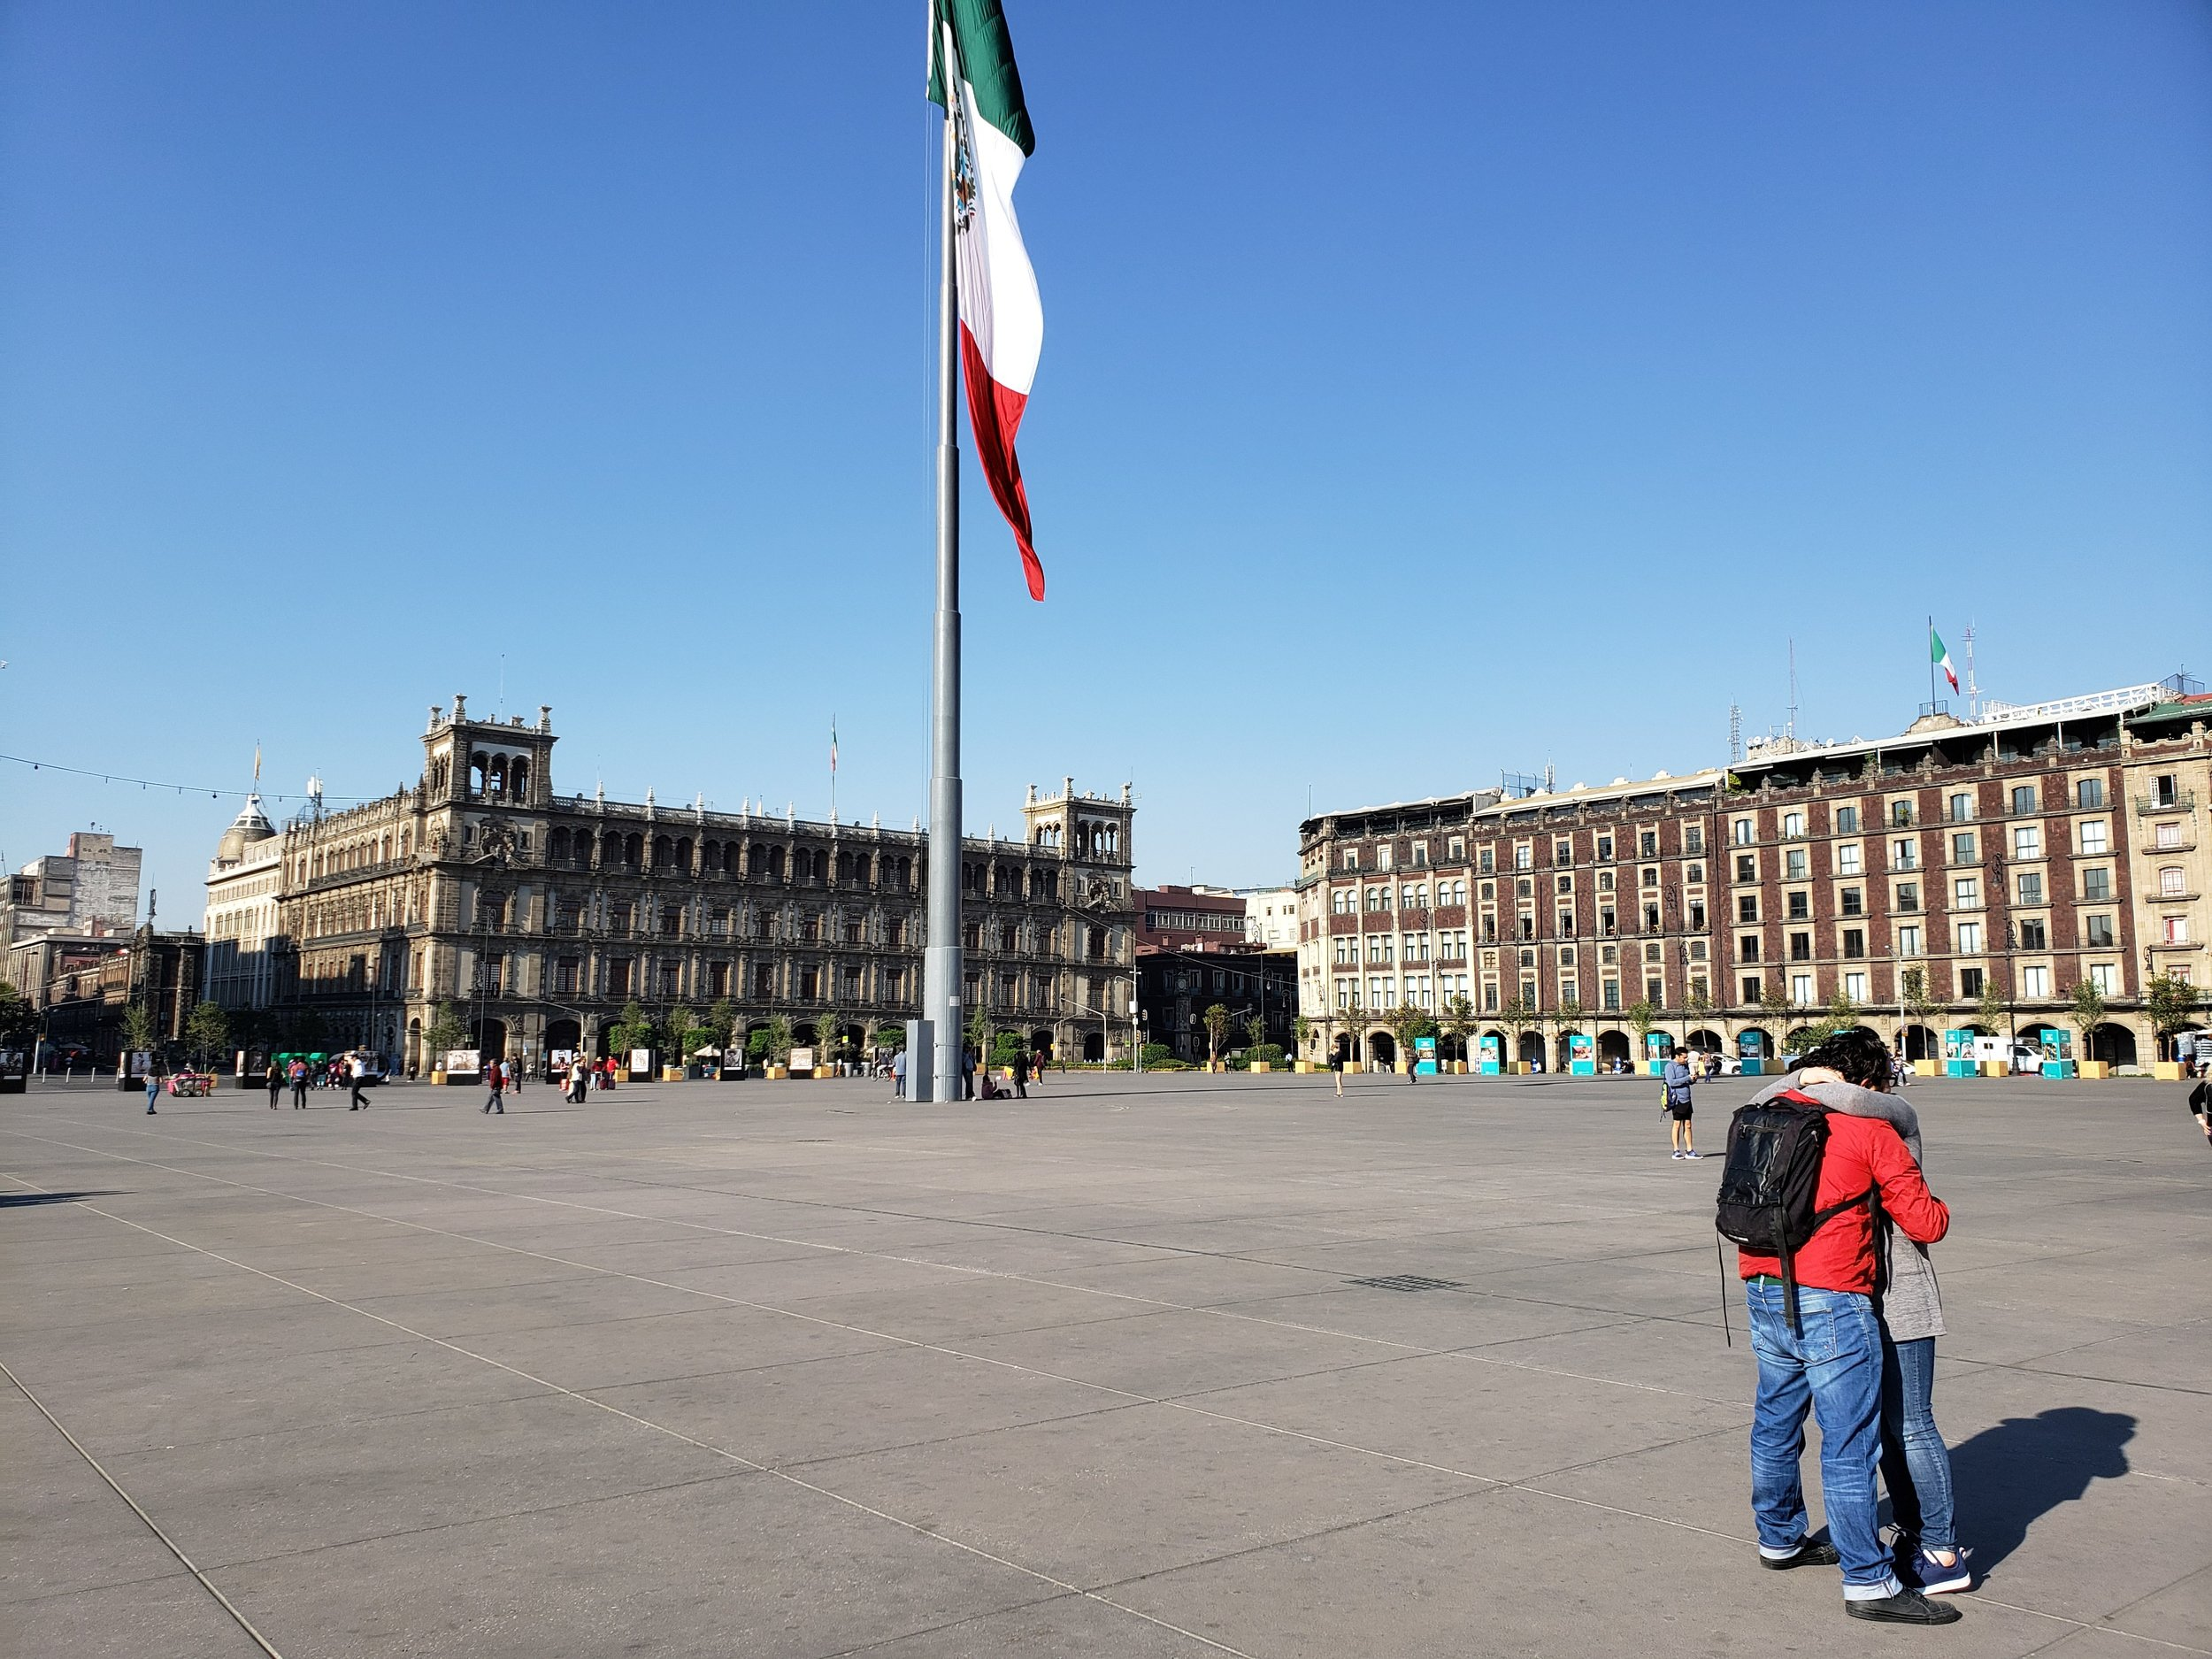 One of the most popular sights and things to do in Mexico City.